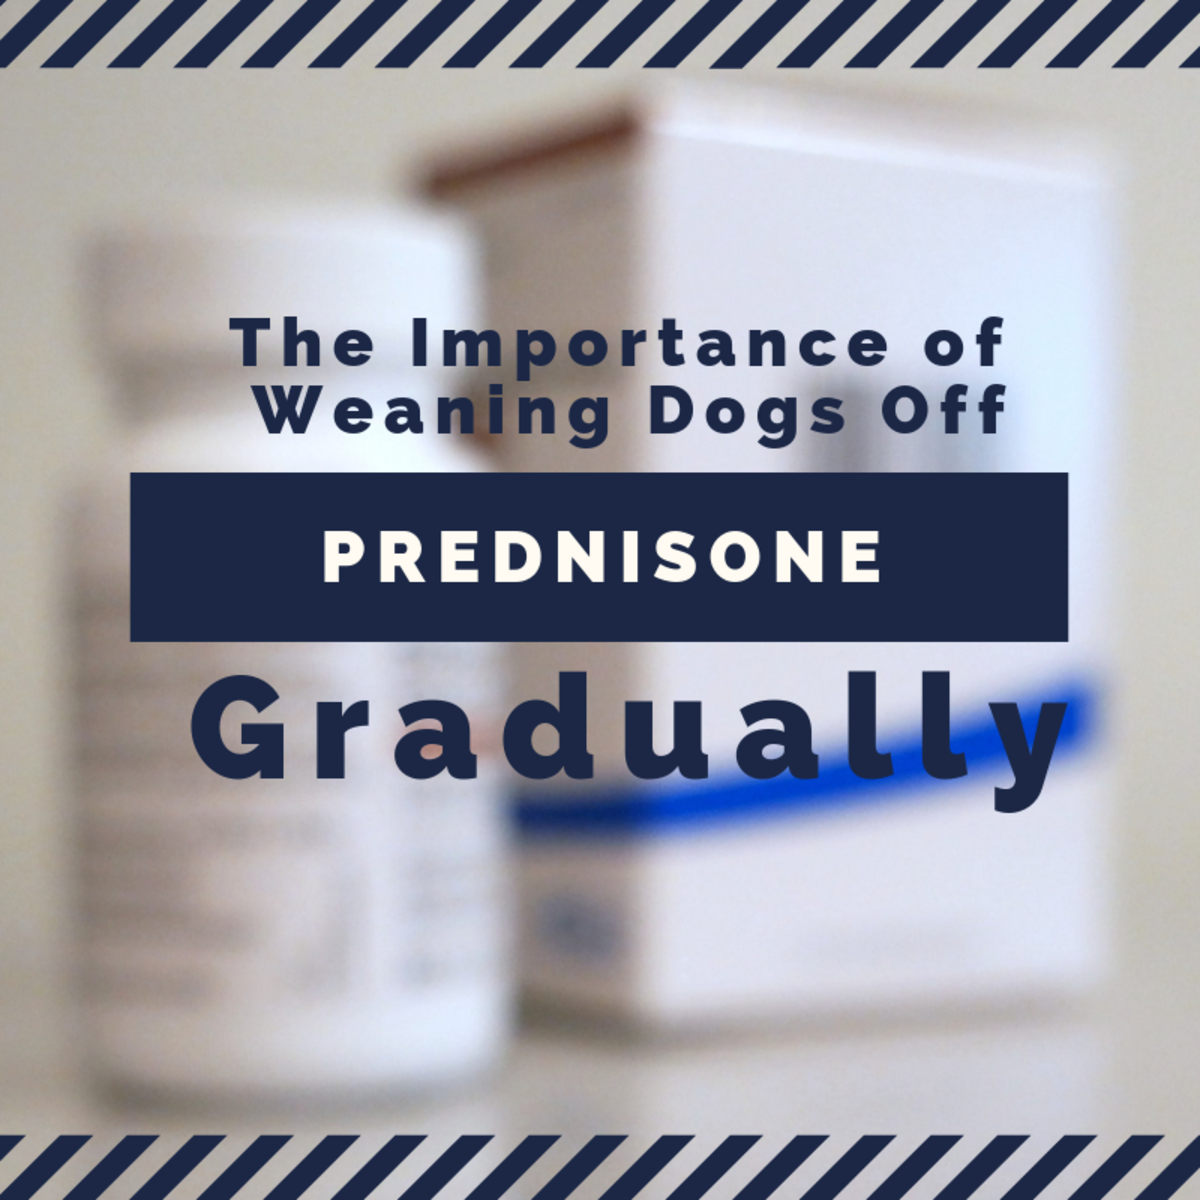 How to Wean a Dog Off Prednisone (or Prednisolone, in the UK)